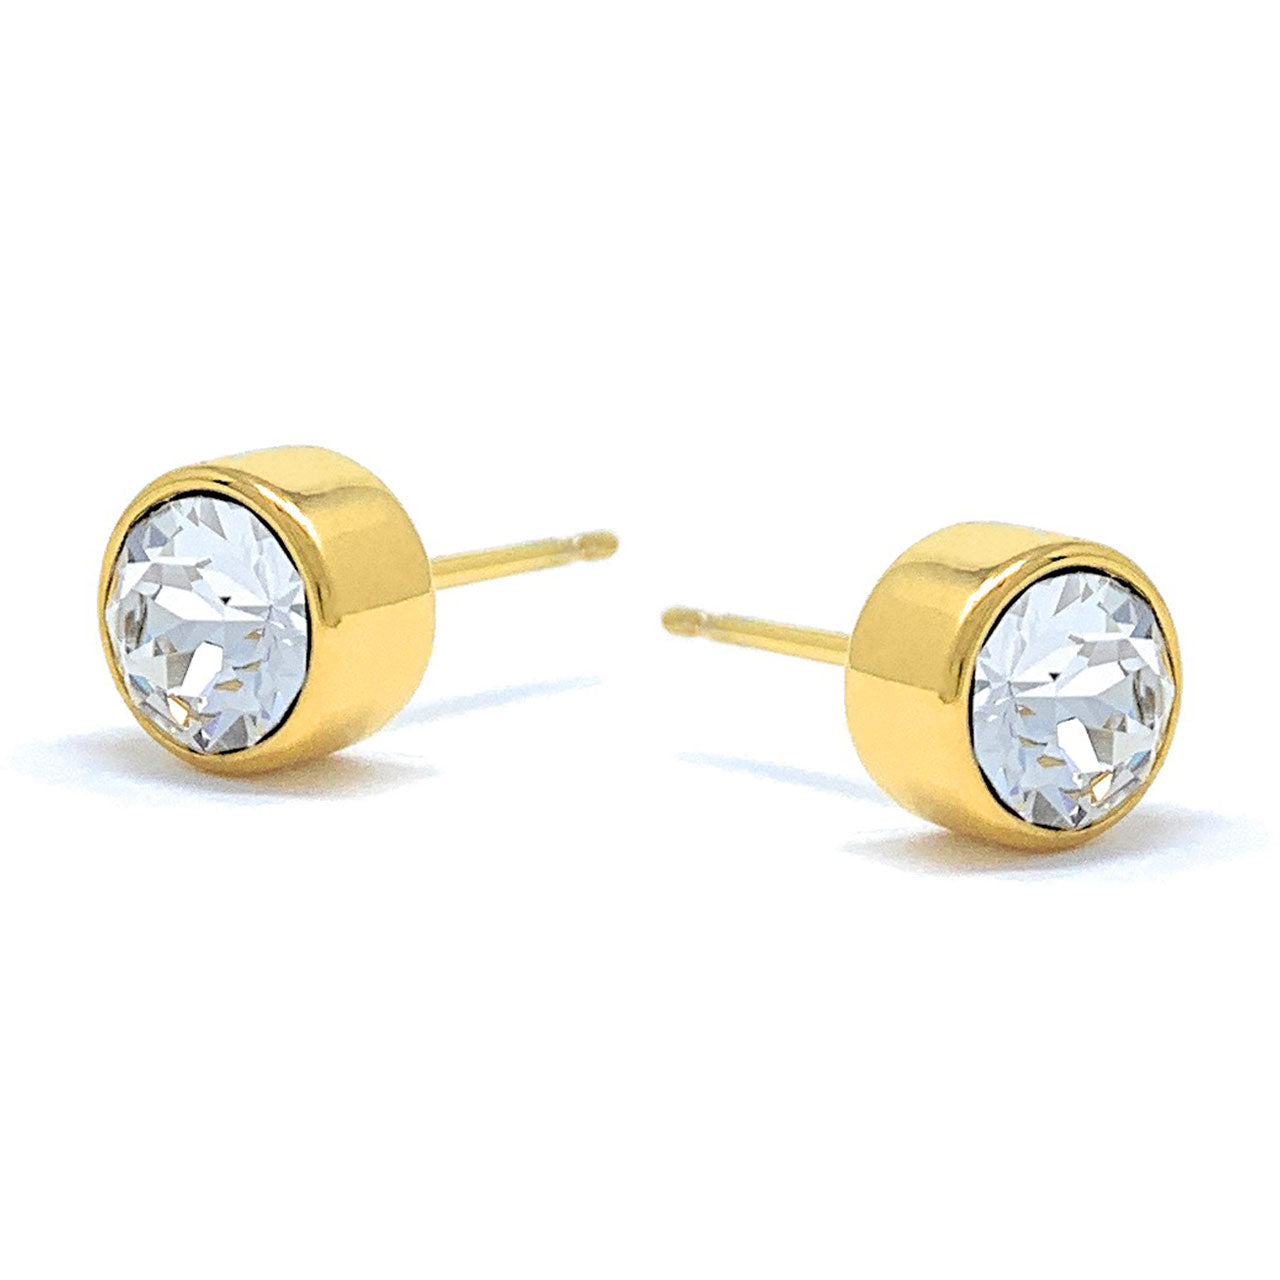 Harley Small Stud Earrings with White Clear Round Crystals from Swarovski Gold Plated - Ed Heart